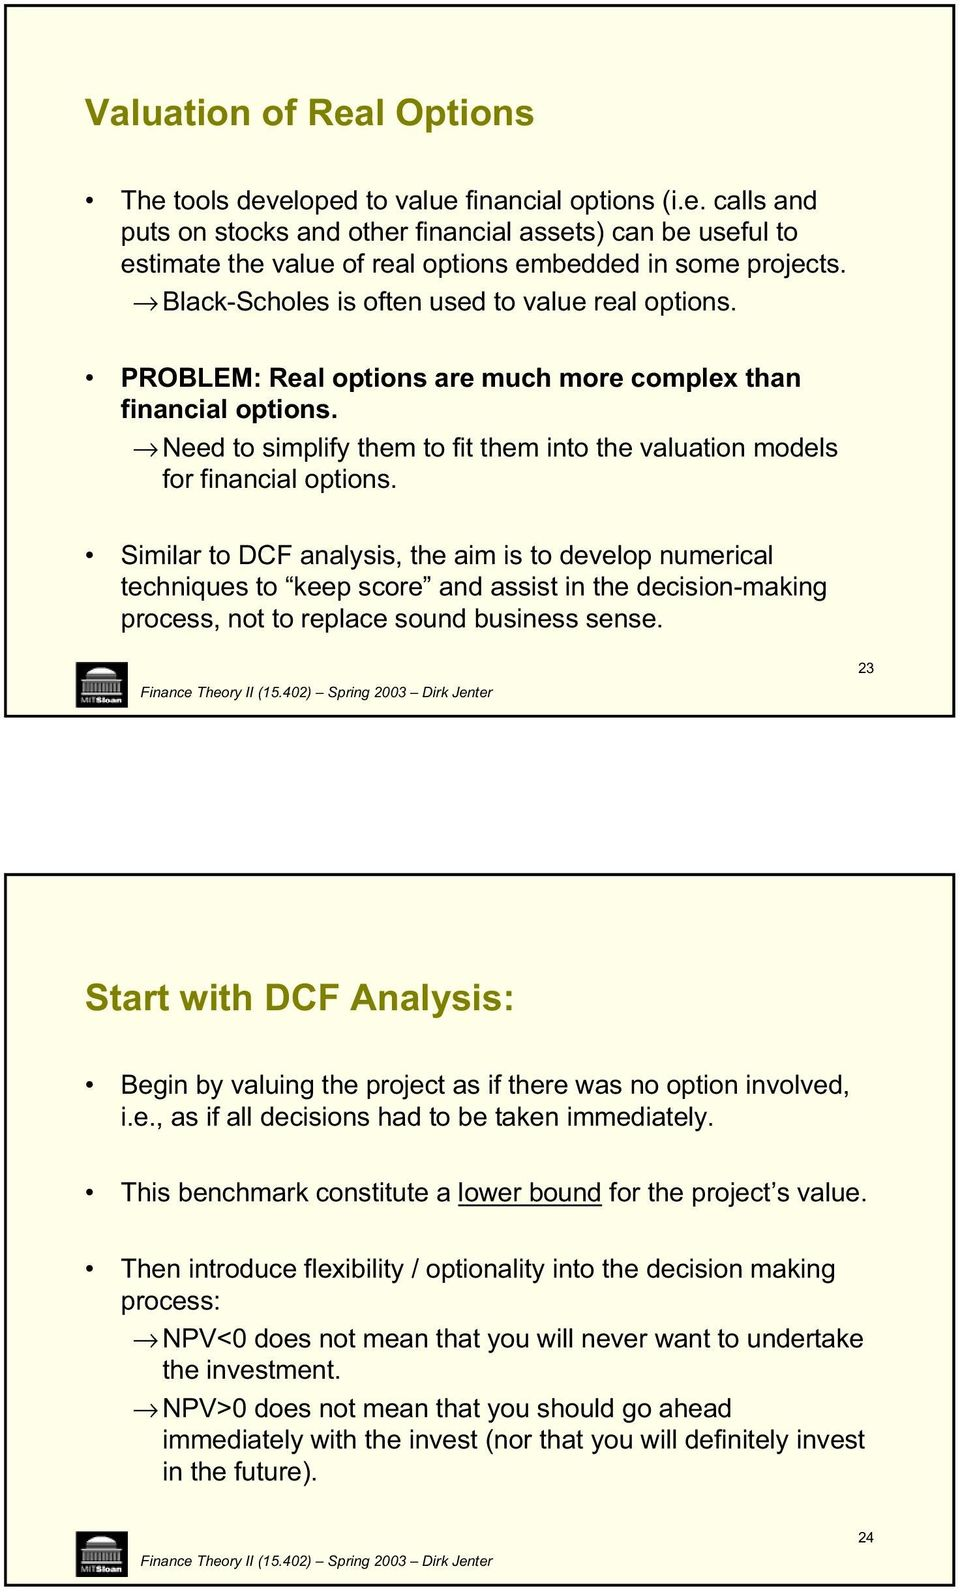 Need to simplify them to fit them into the valuation models for financial options.